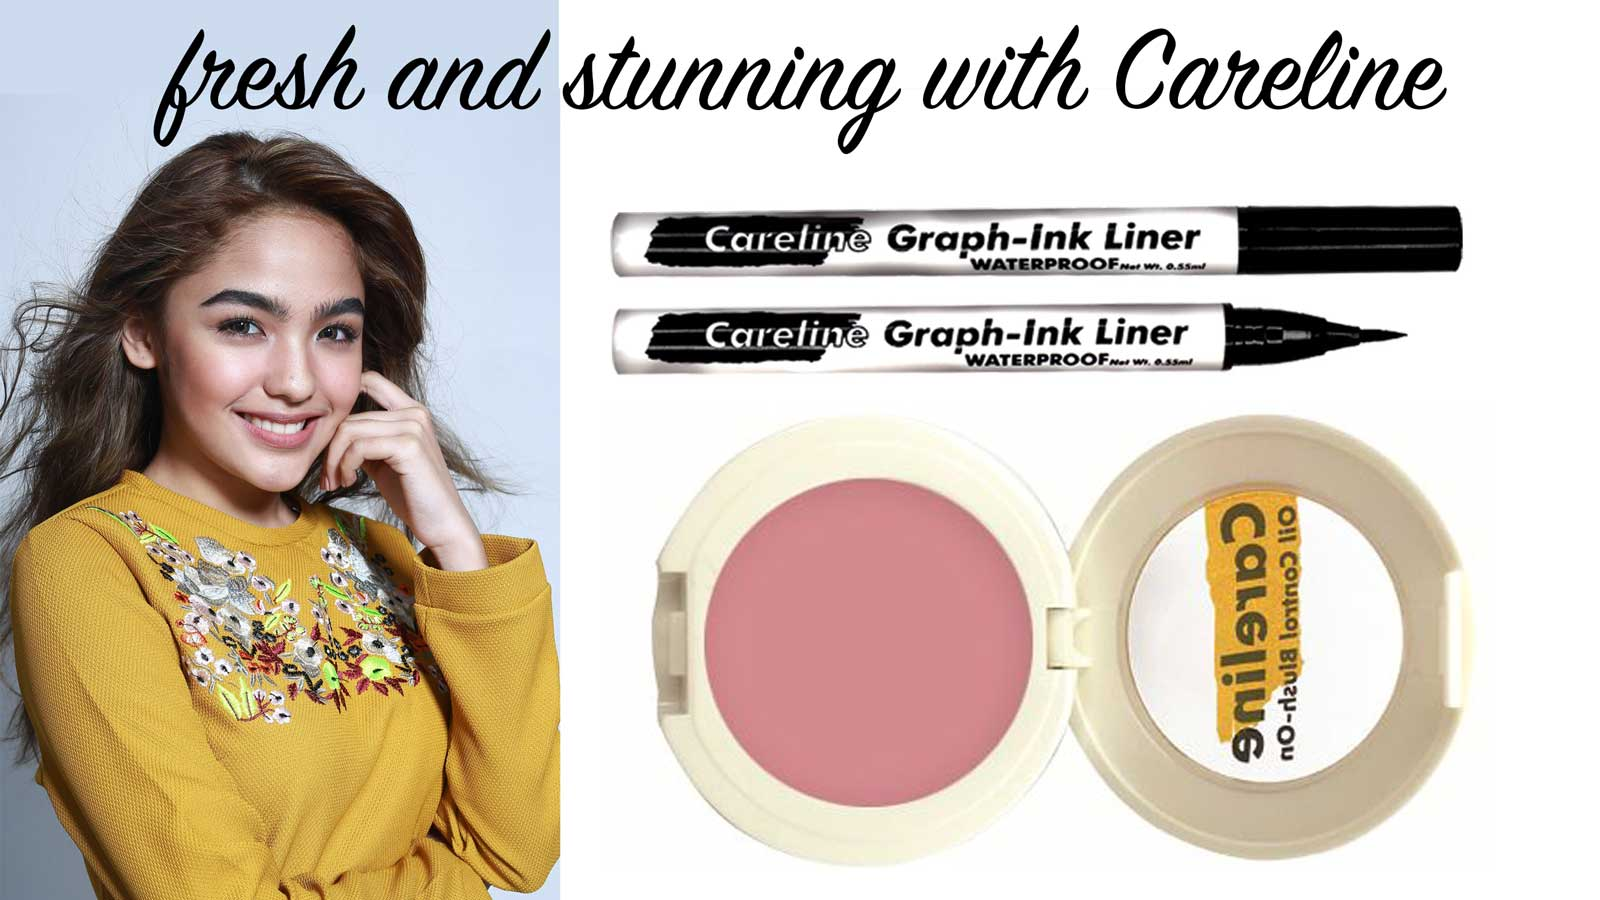 Look fresh and stunning with Careline Graph-Ink Liner and Oil Control Blush-On